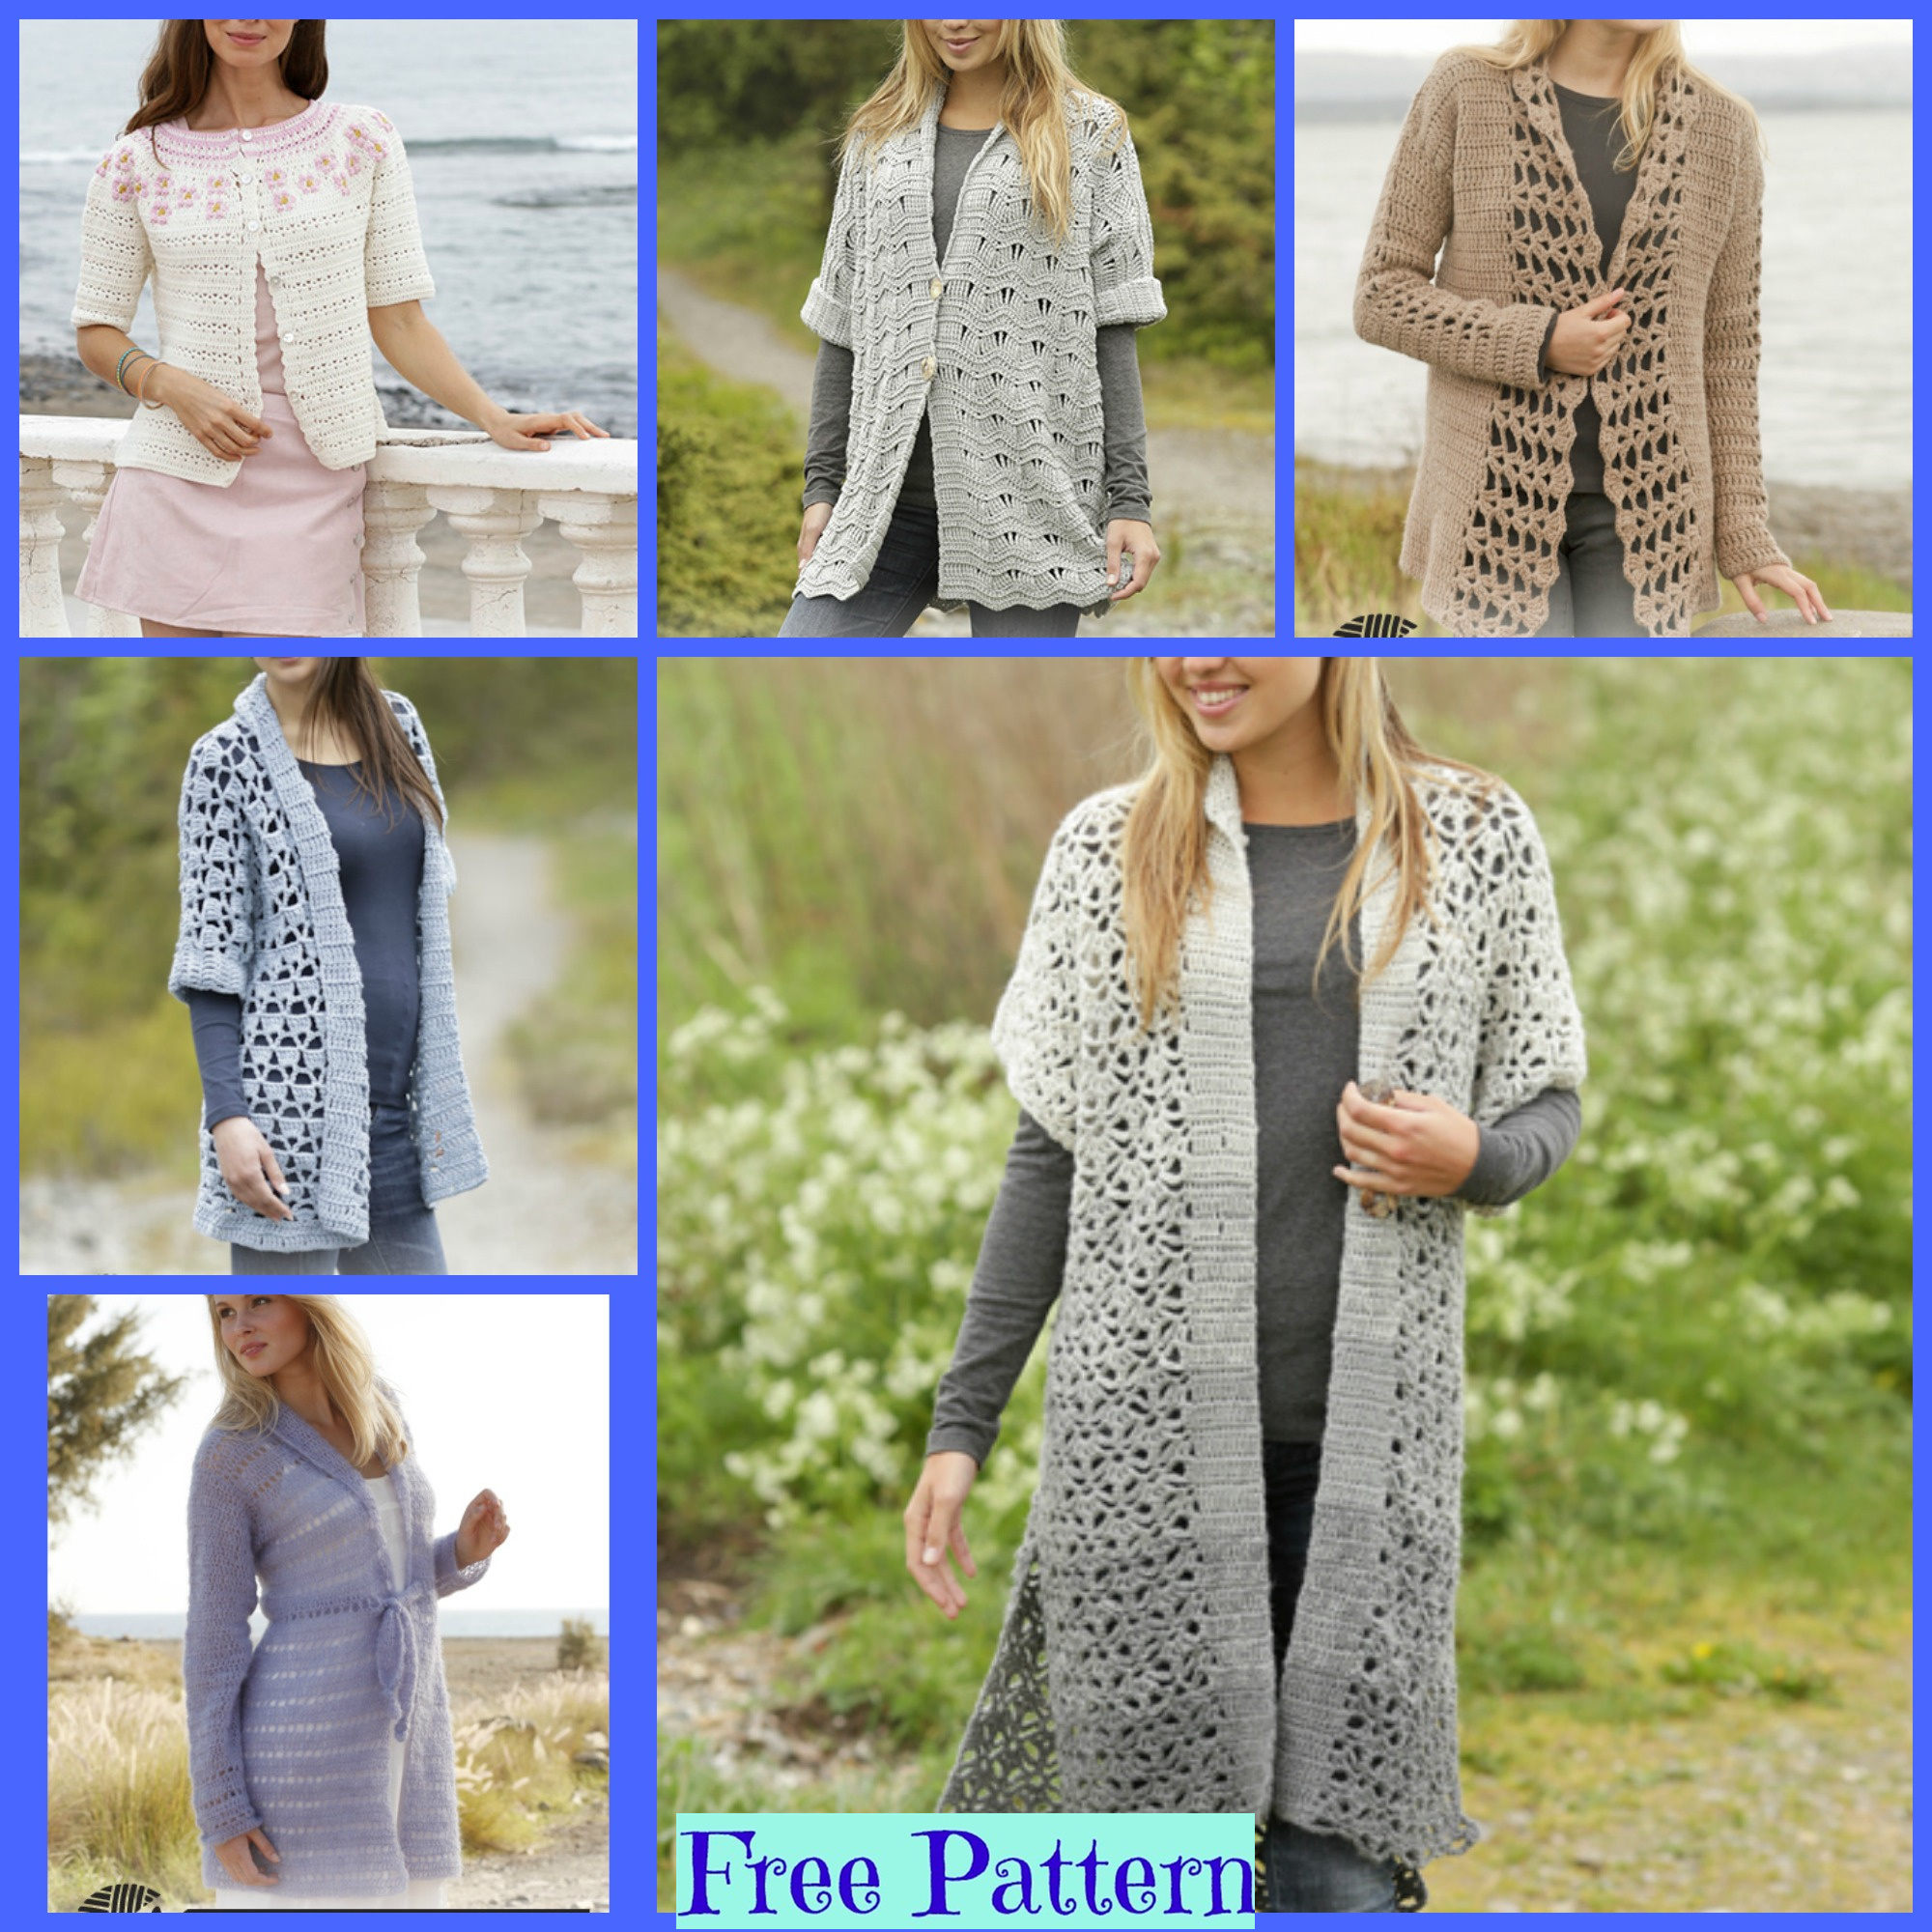 diy4ever-6 Unique Crochet Jacket - Free Patterns